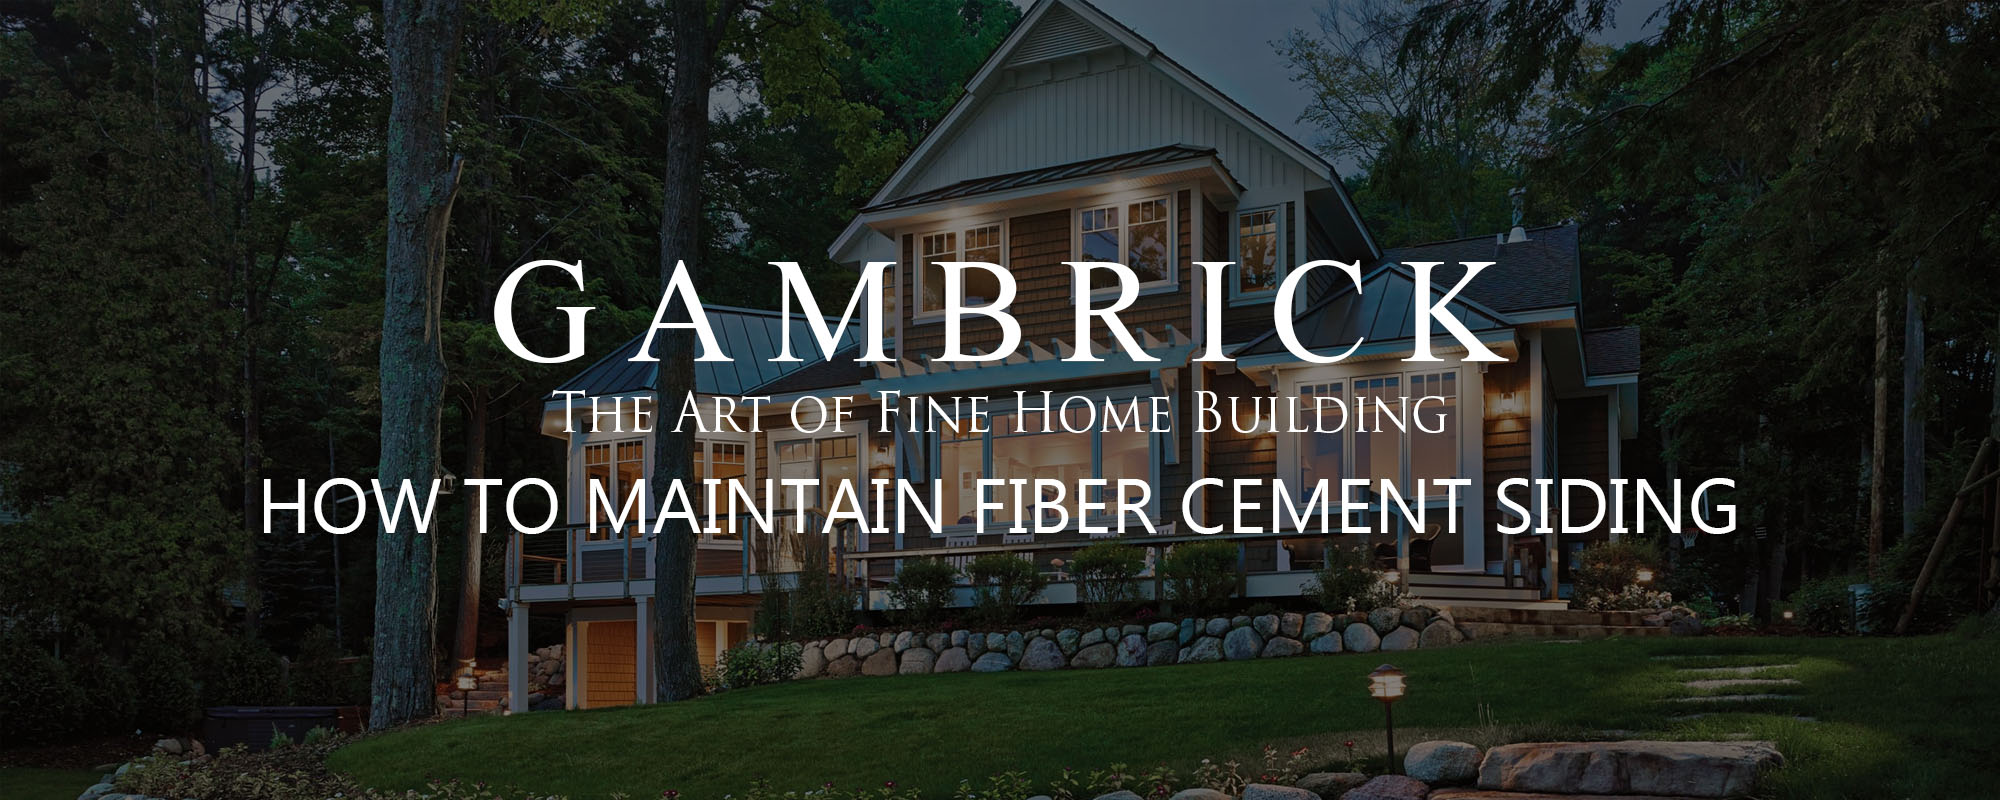 How to maintain fiber cement siding banner pic - Gambrick